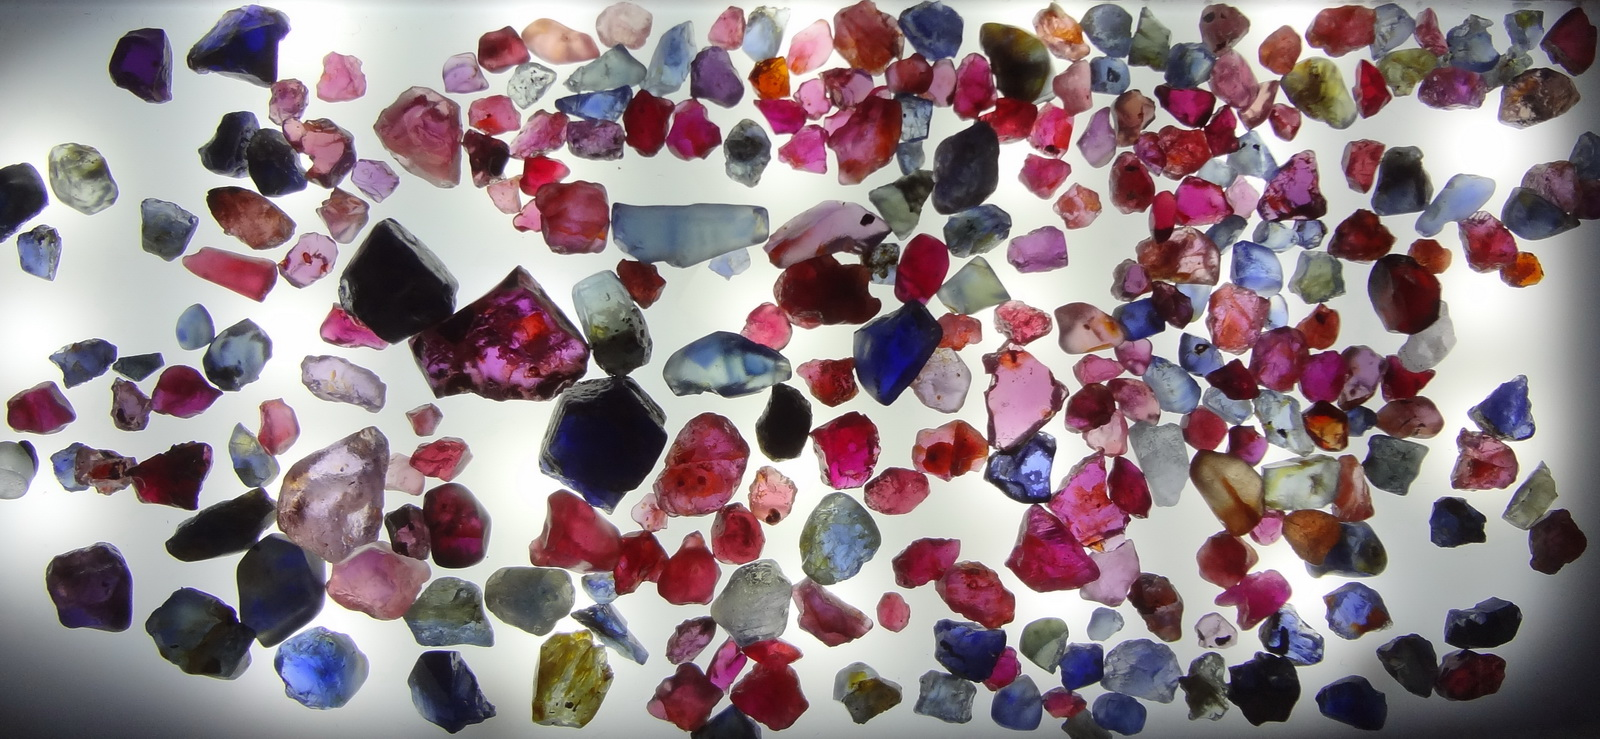 Buy Ruby Sapphire and Zircon on-line, wholesale and precious stones